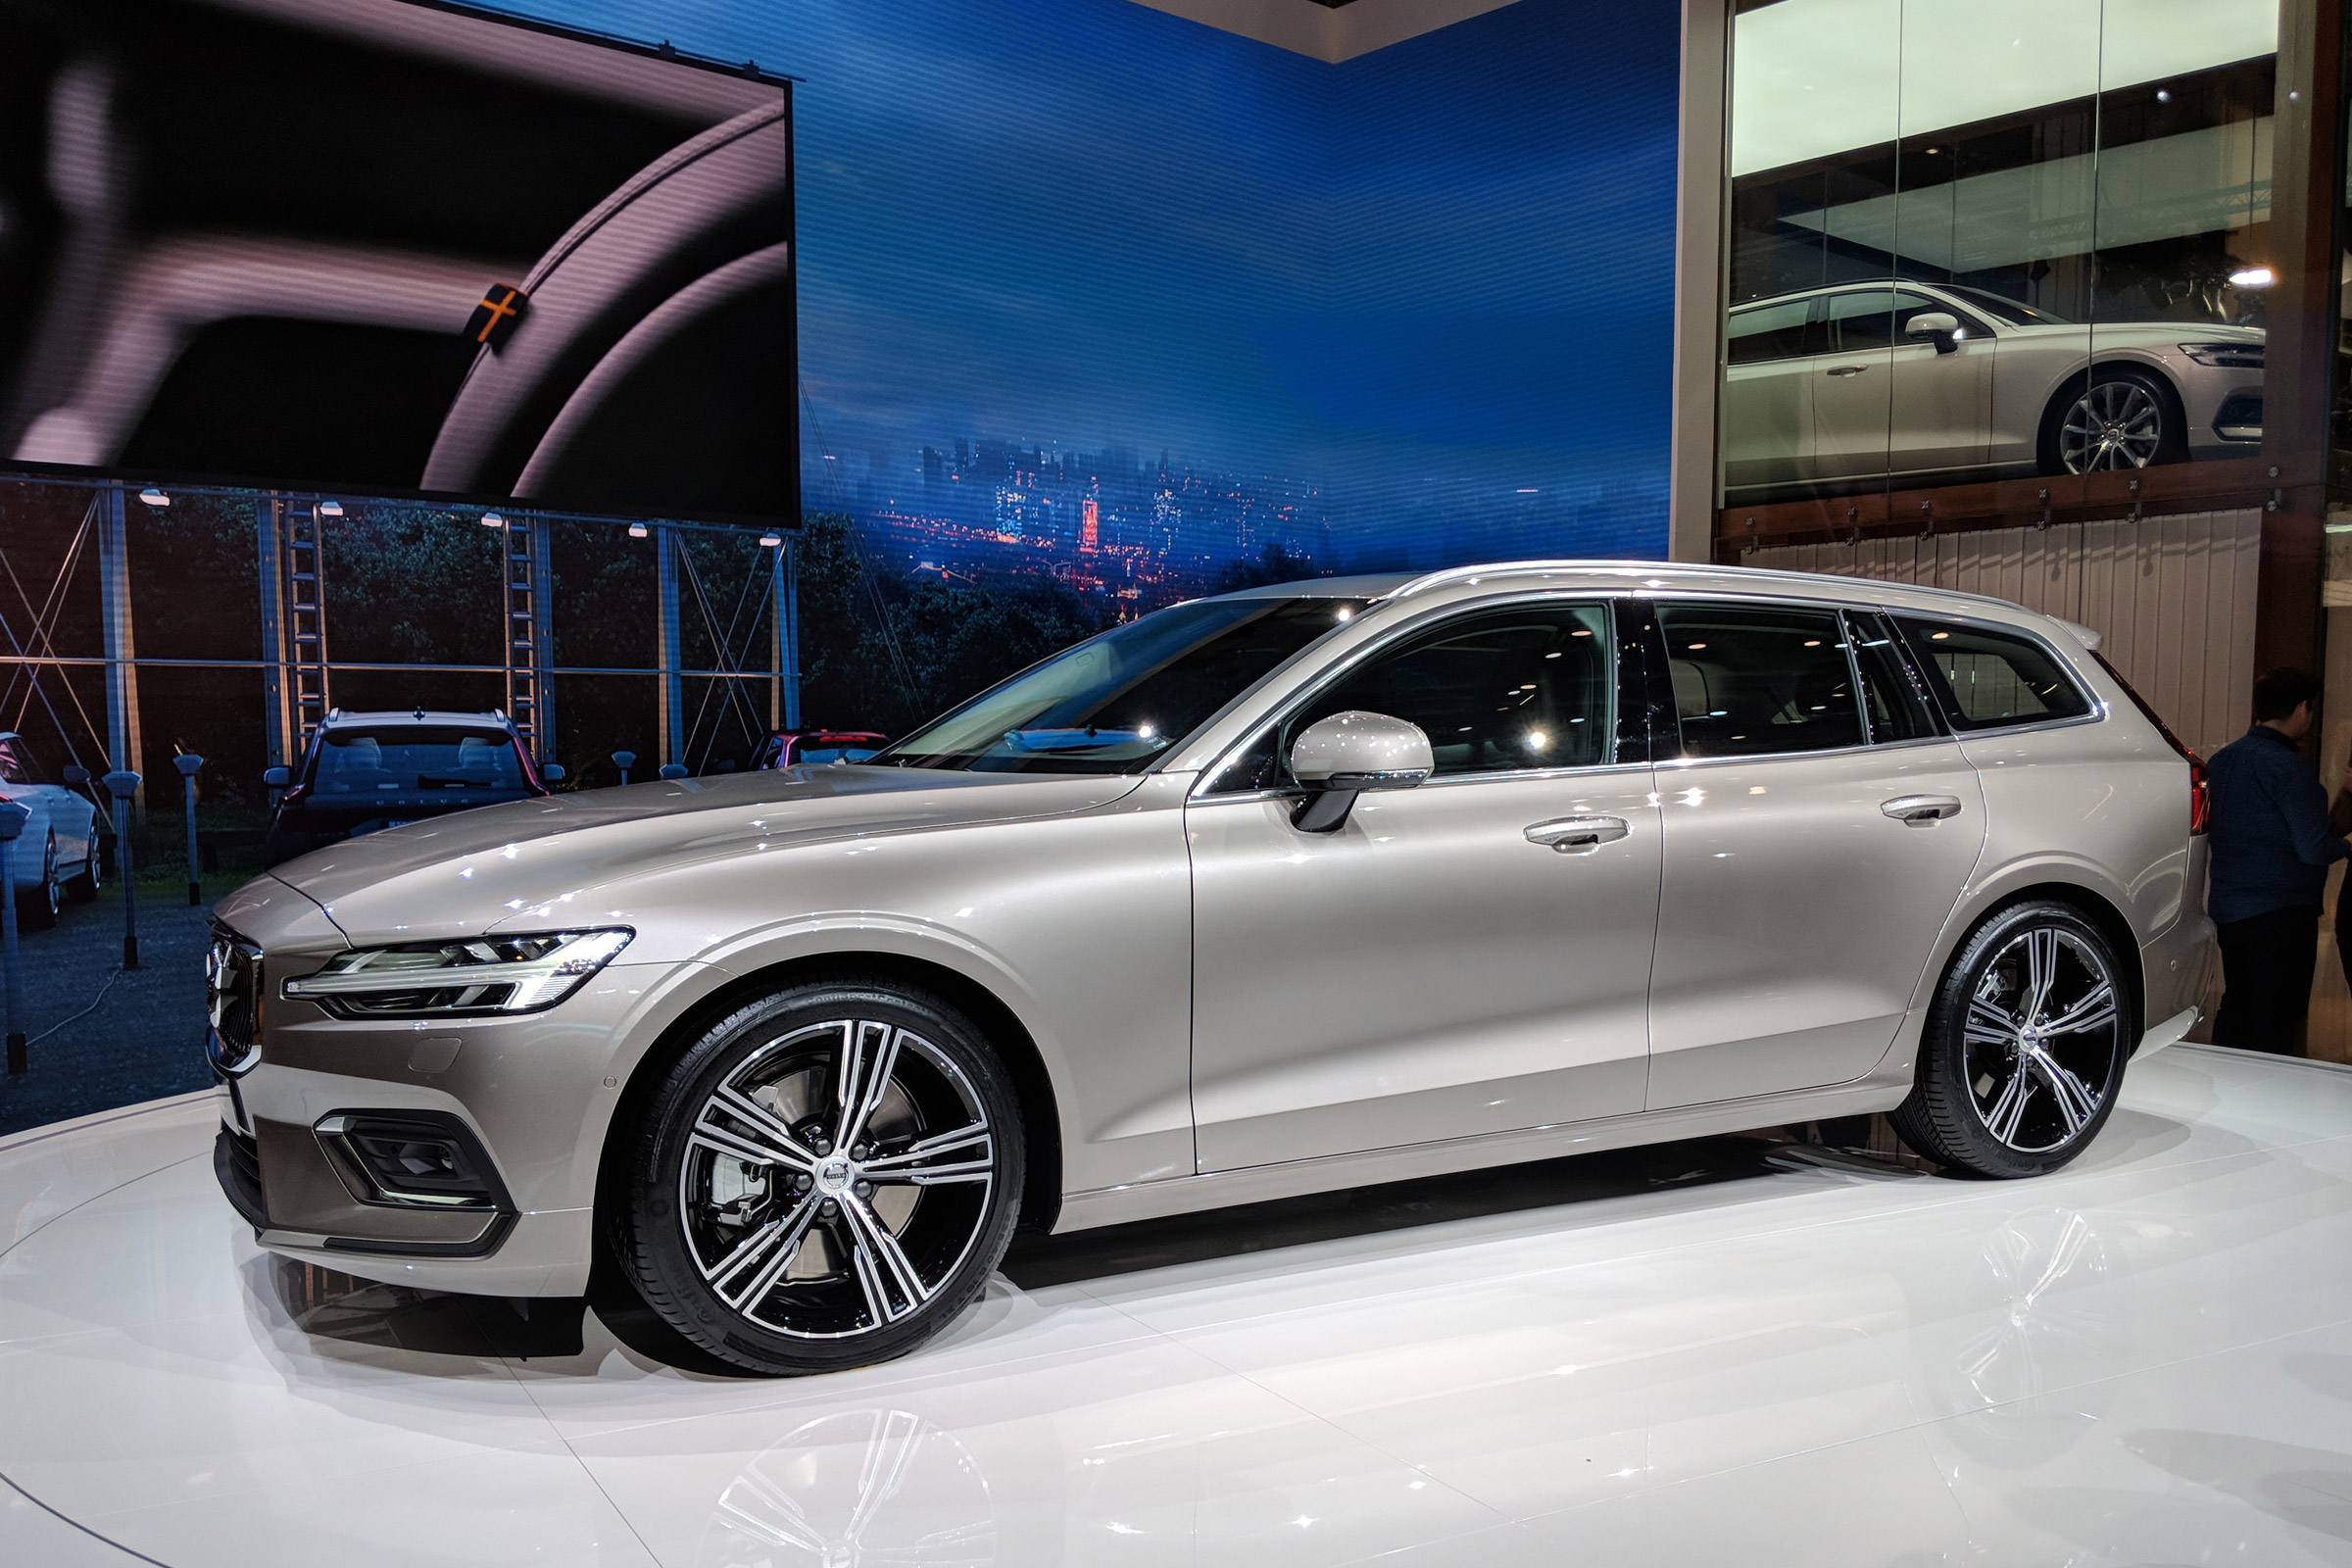 New 2018 Volvo V60 Prices Announced For Uk